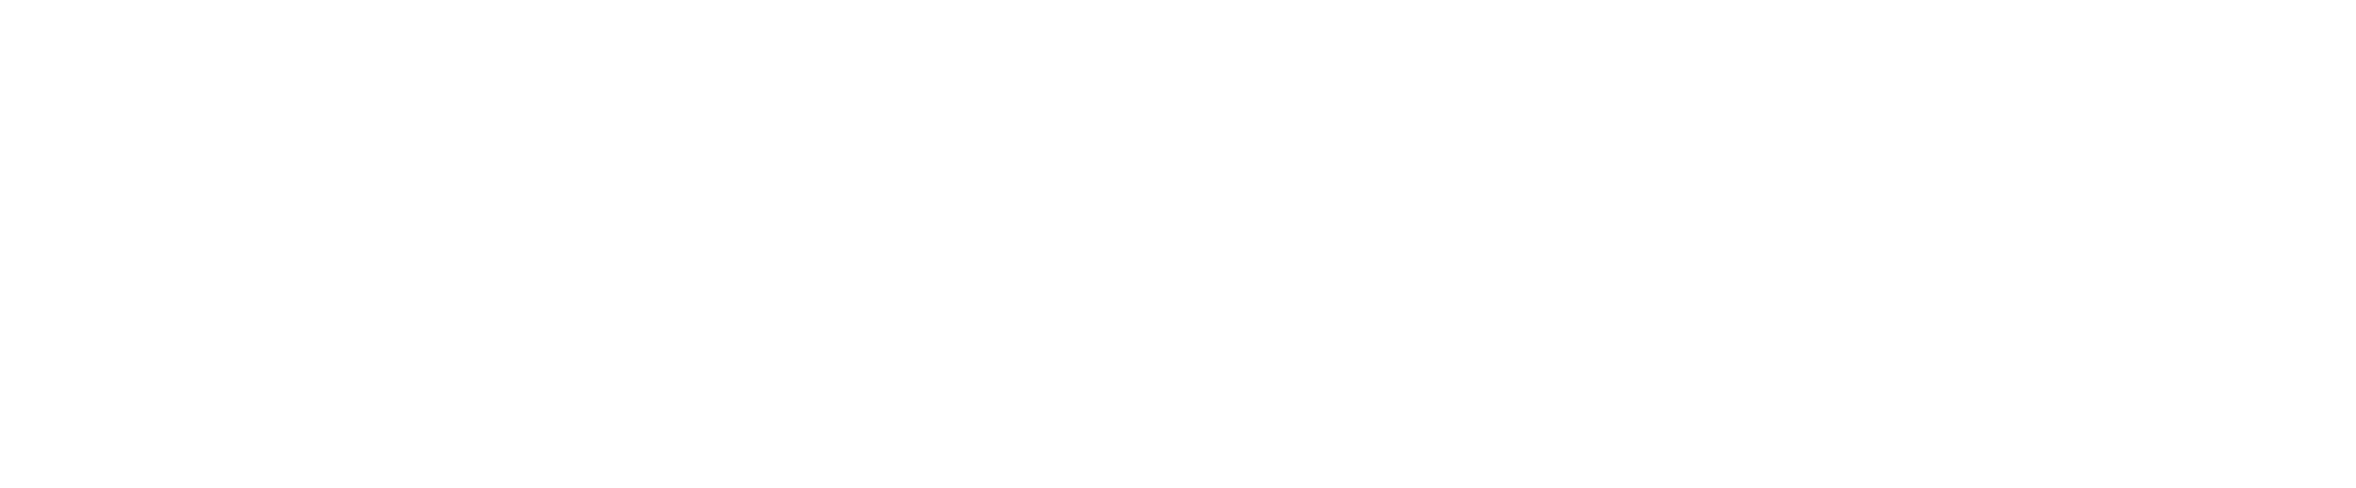 UBC Faculty of Science Logo